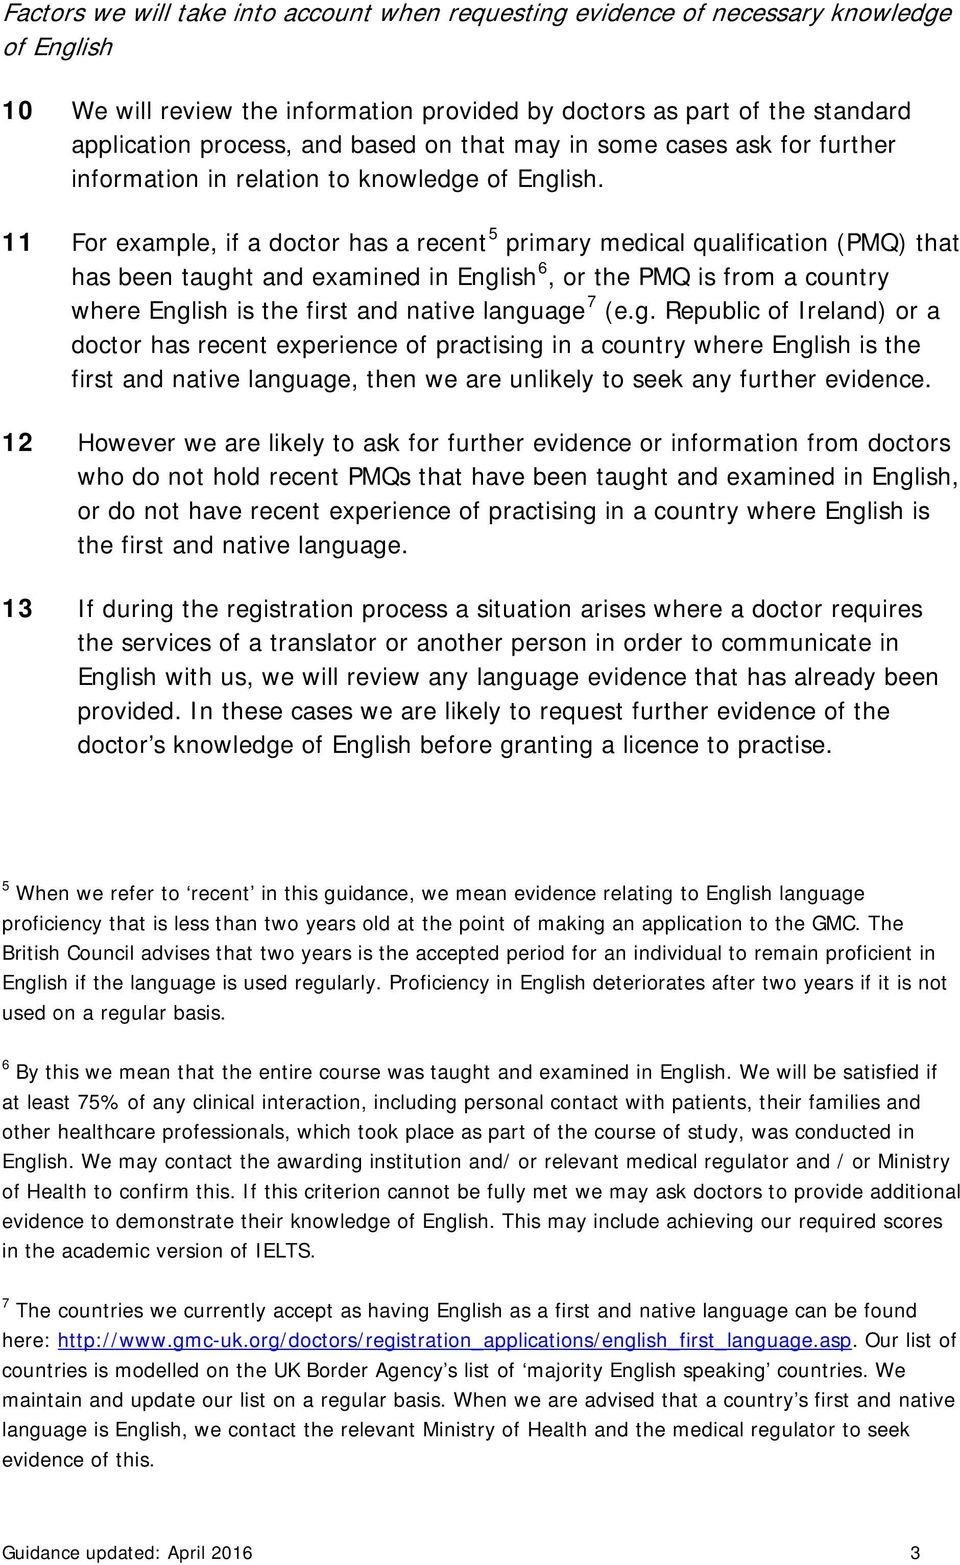 11 For example, if a doctor has a recent 5 primary medical qualification (PMQ) that has been taught and examined in English 6, or the PMQ is from a country where English is the first and native